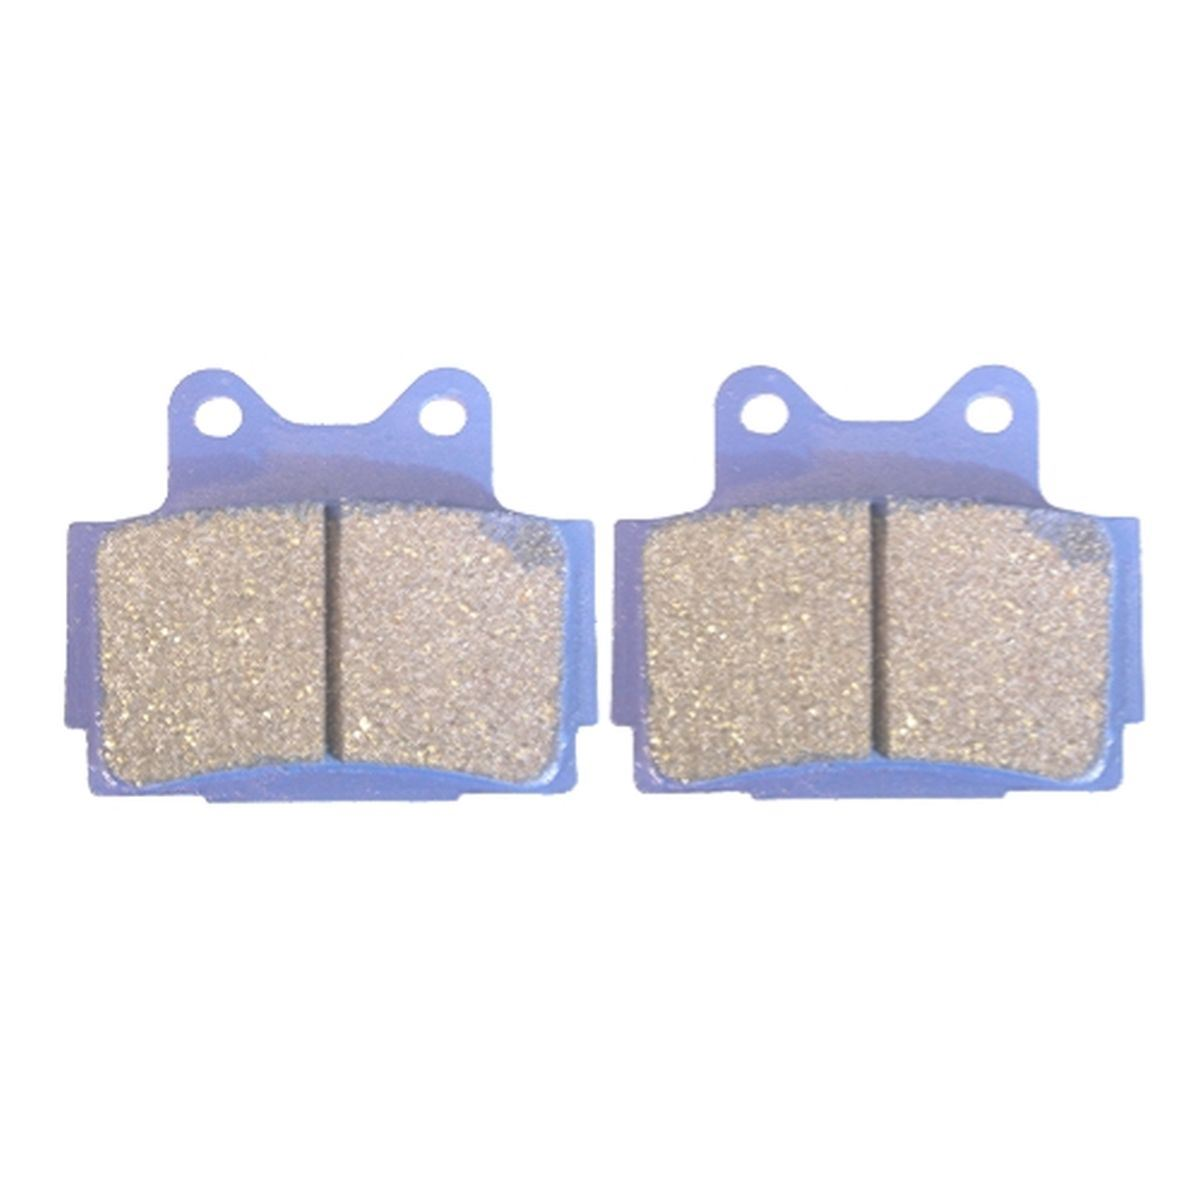 1XL Twin Shock Brake Disc Pads Front R//H Kyoto for 1989 Yamaha SRX 600